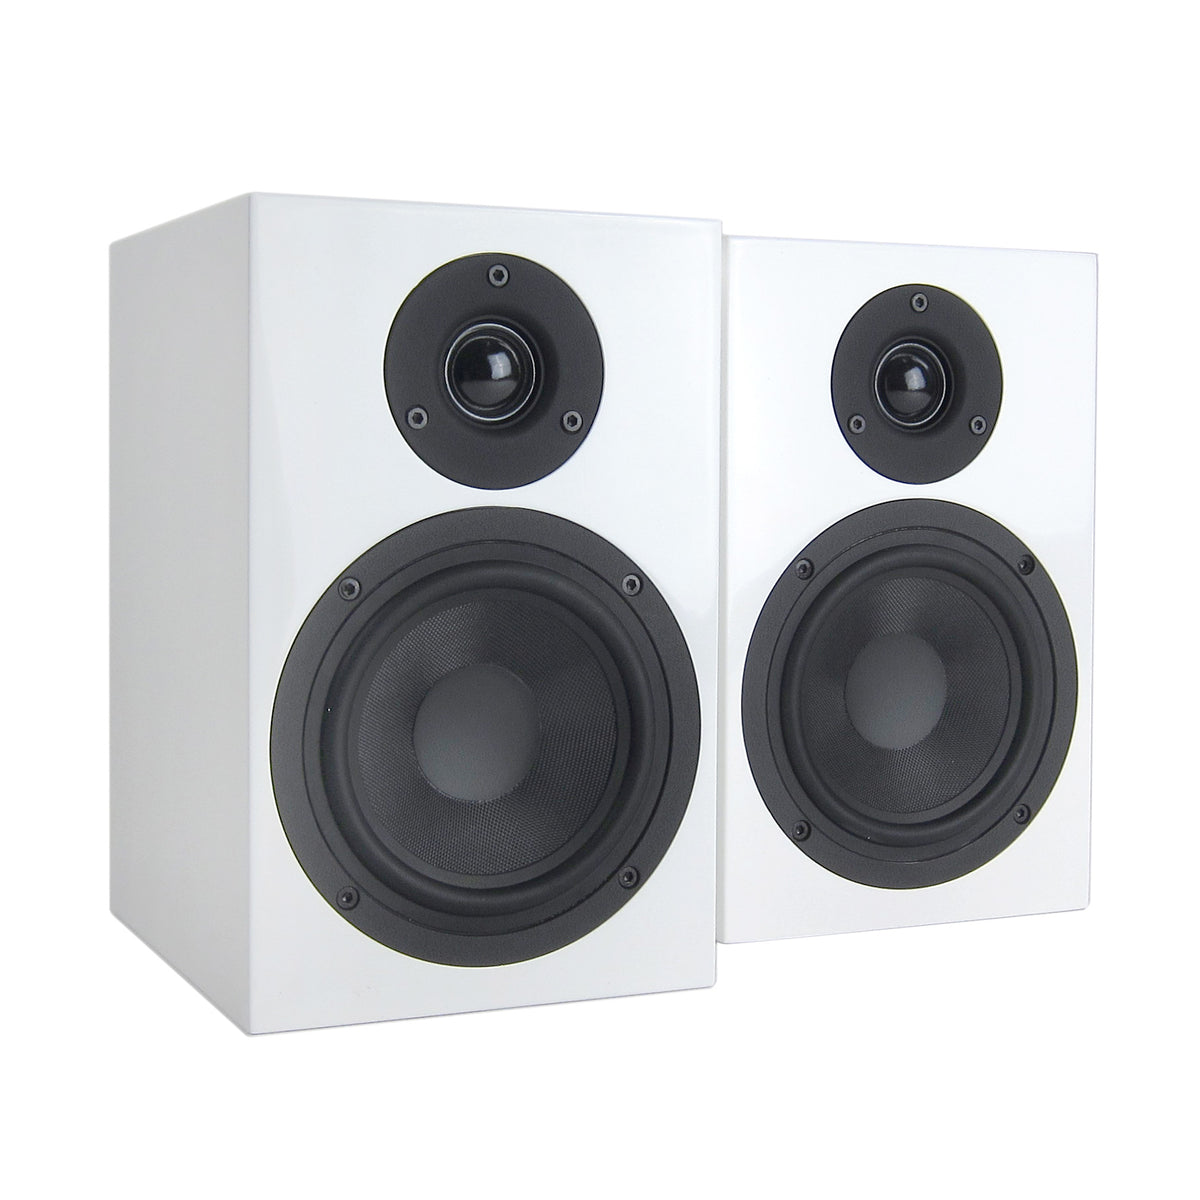 Pro-Ject: Speaker Box 5 Speakers - White